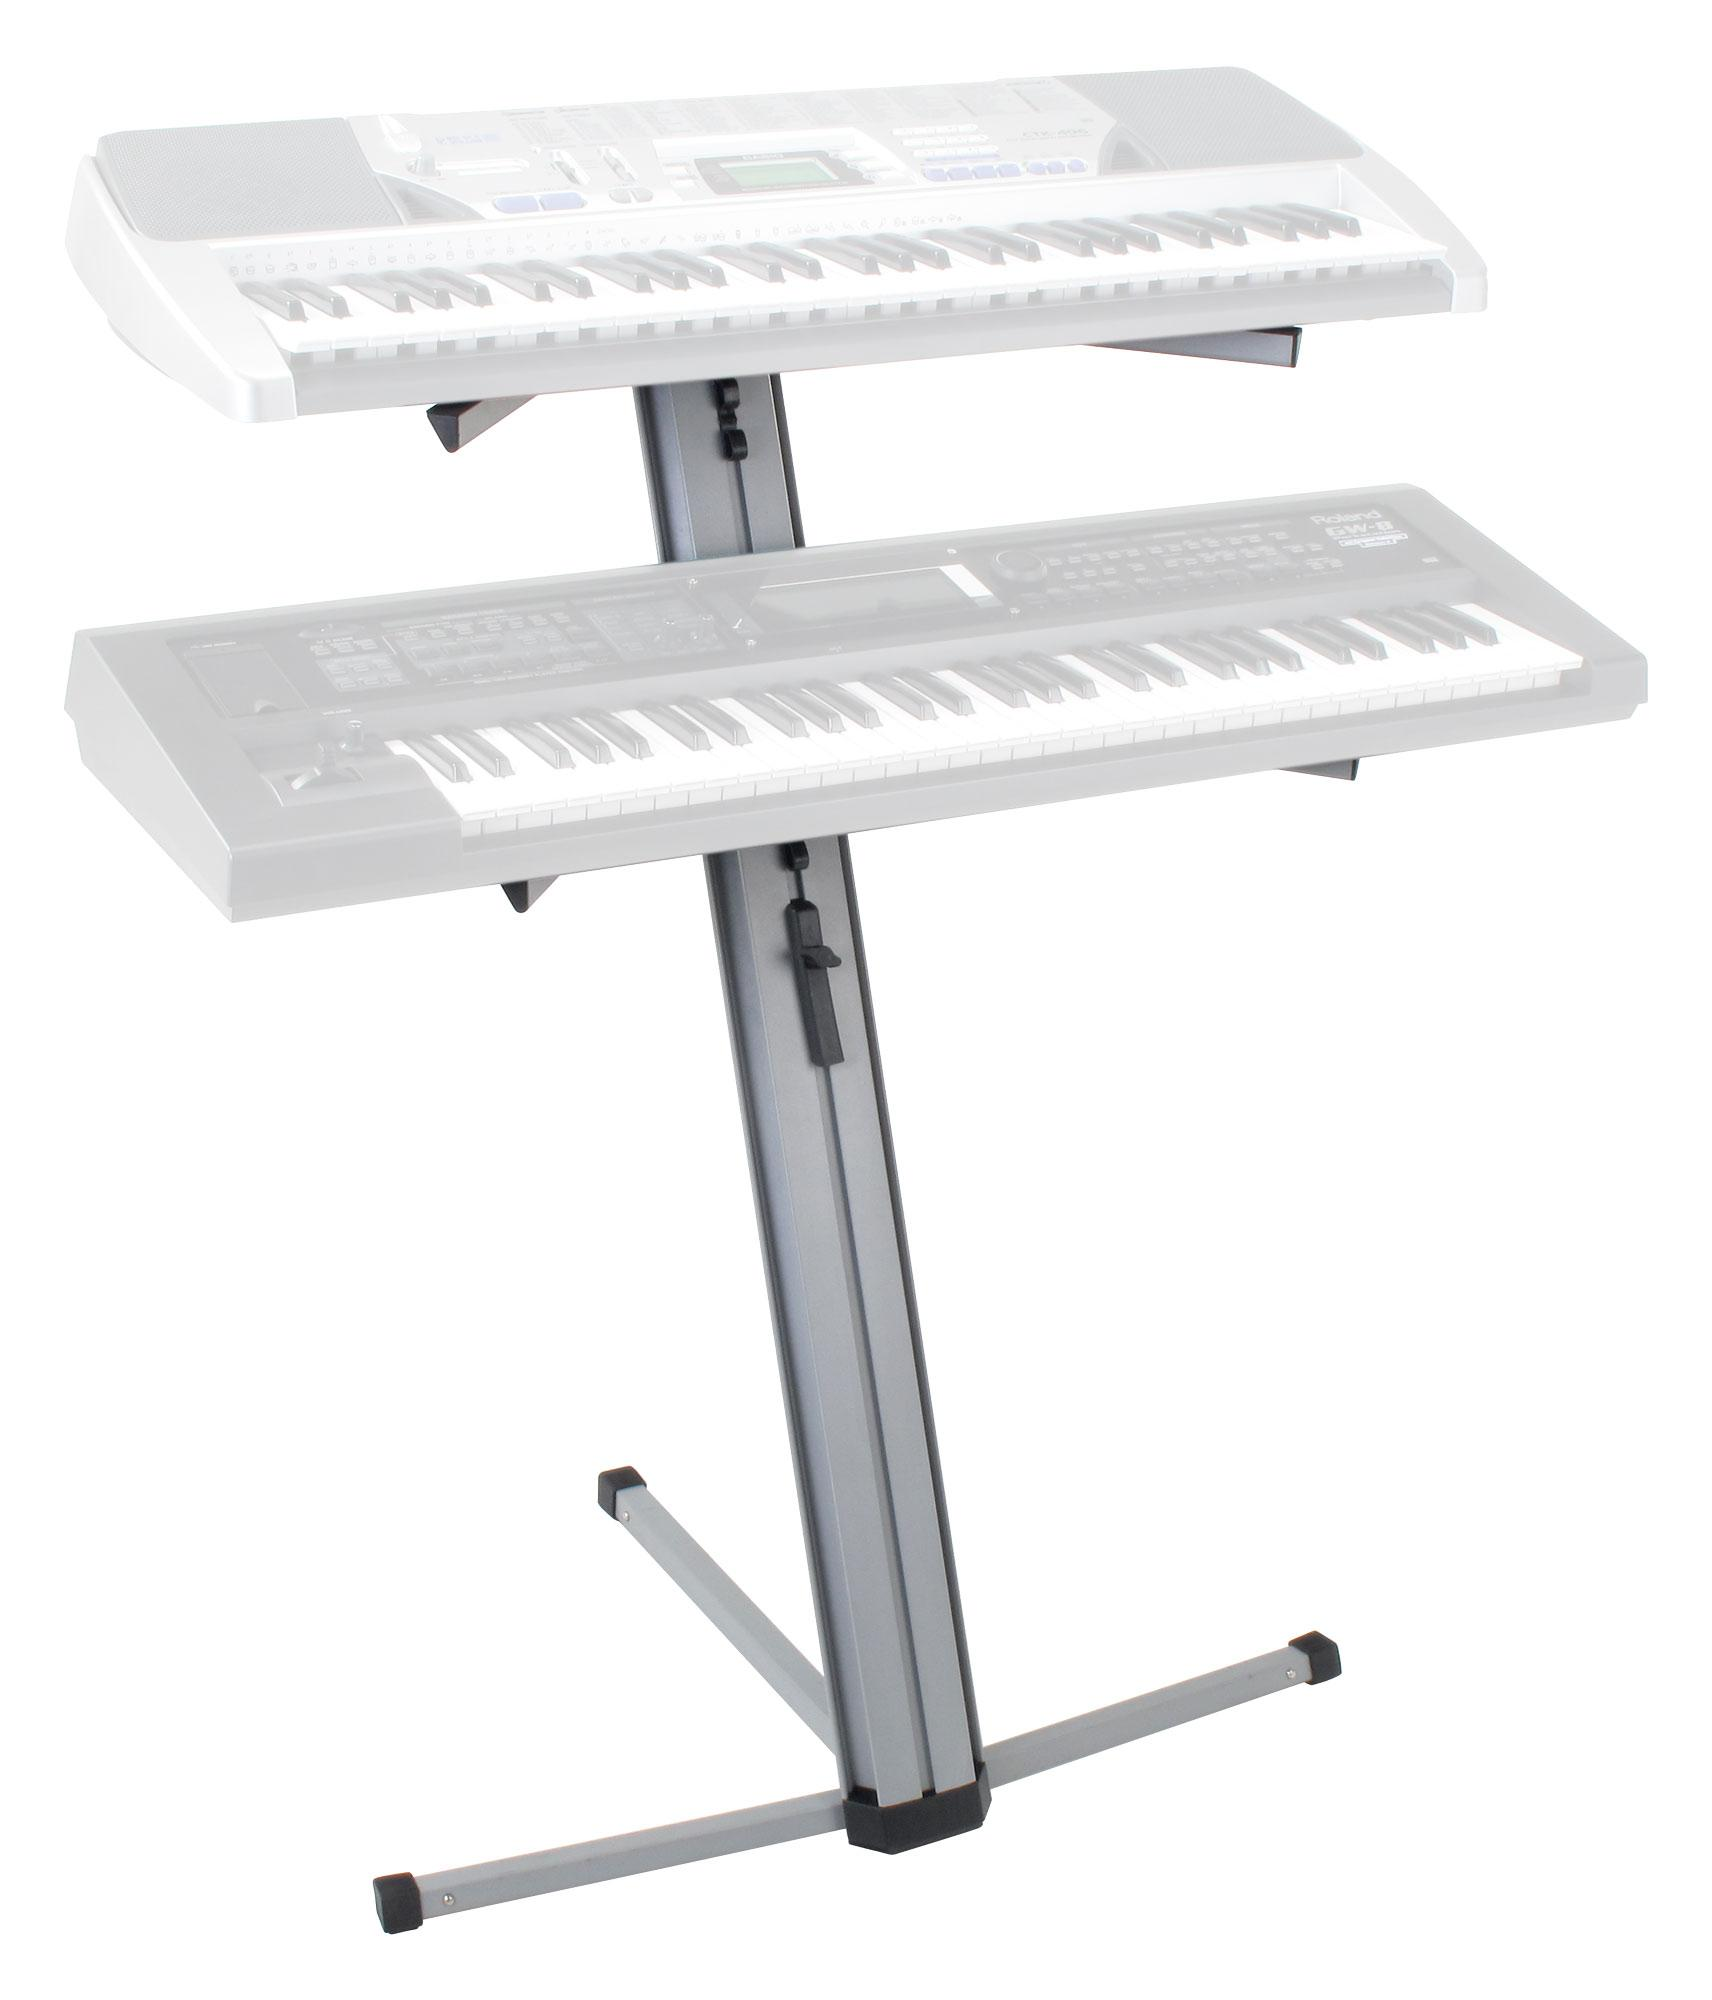 Classic cantabile ks 100 double keyboard stand silver for Stand 2 b